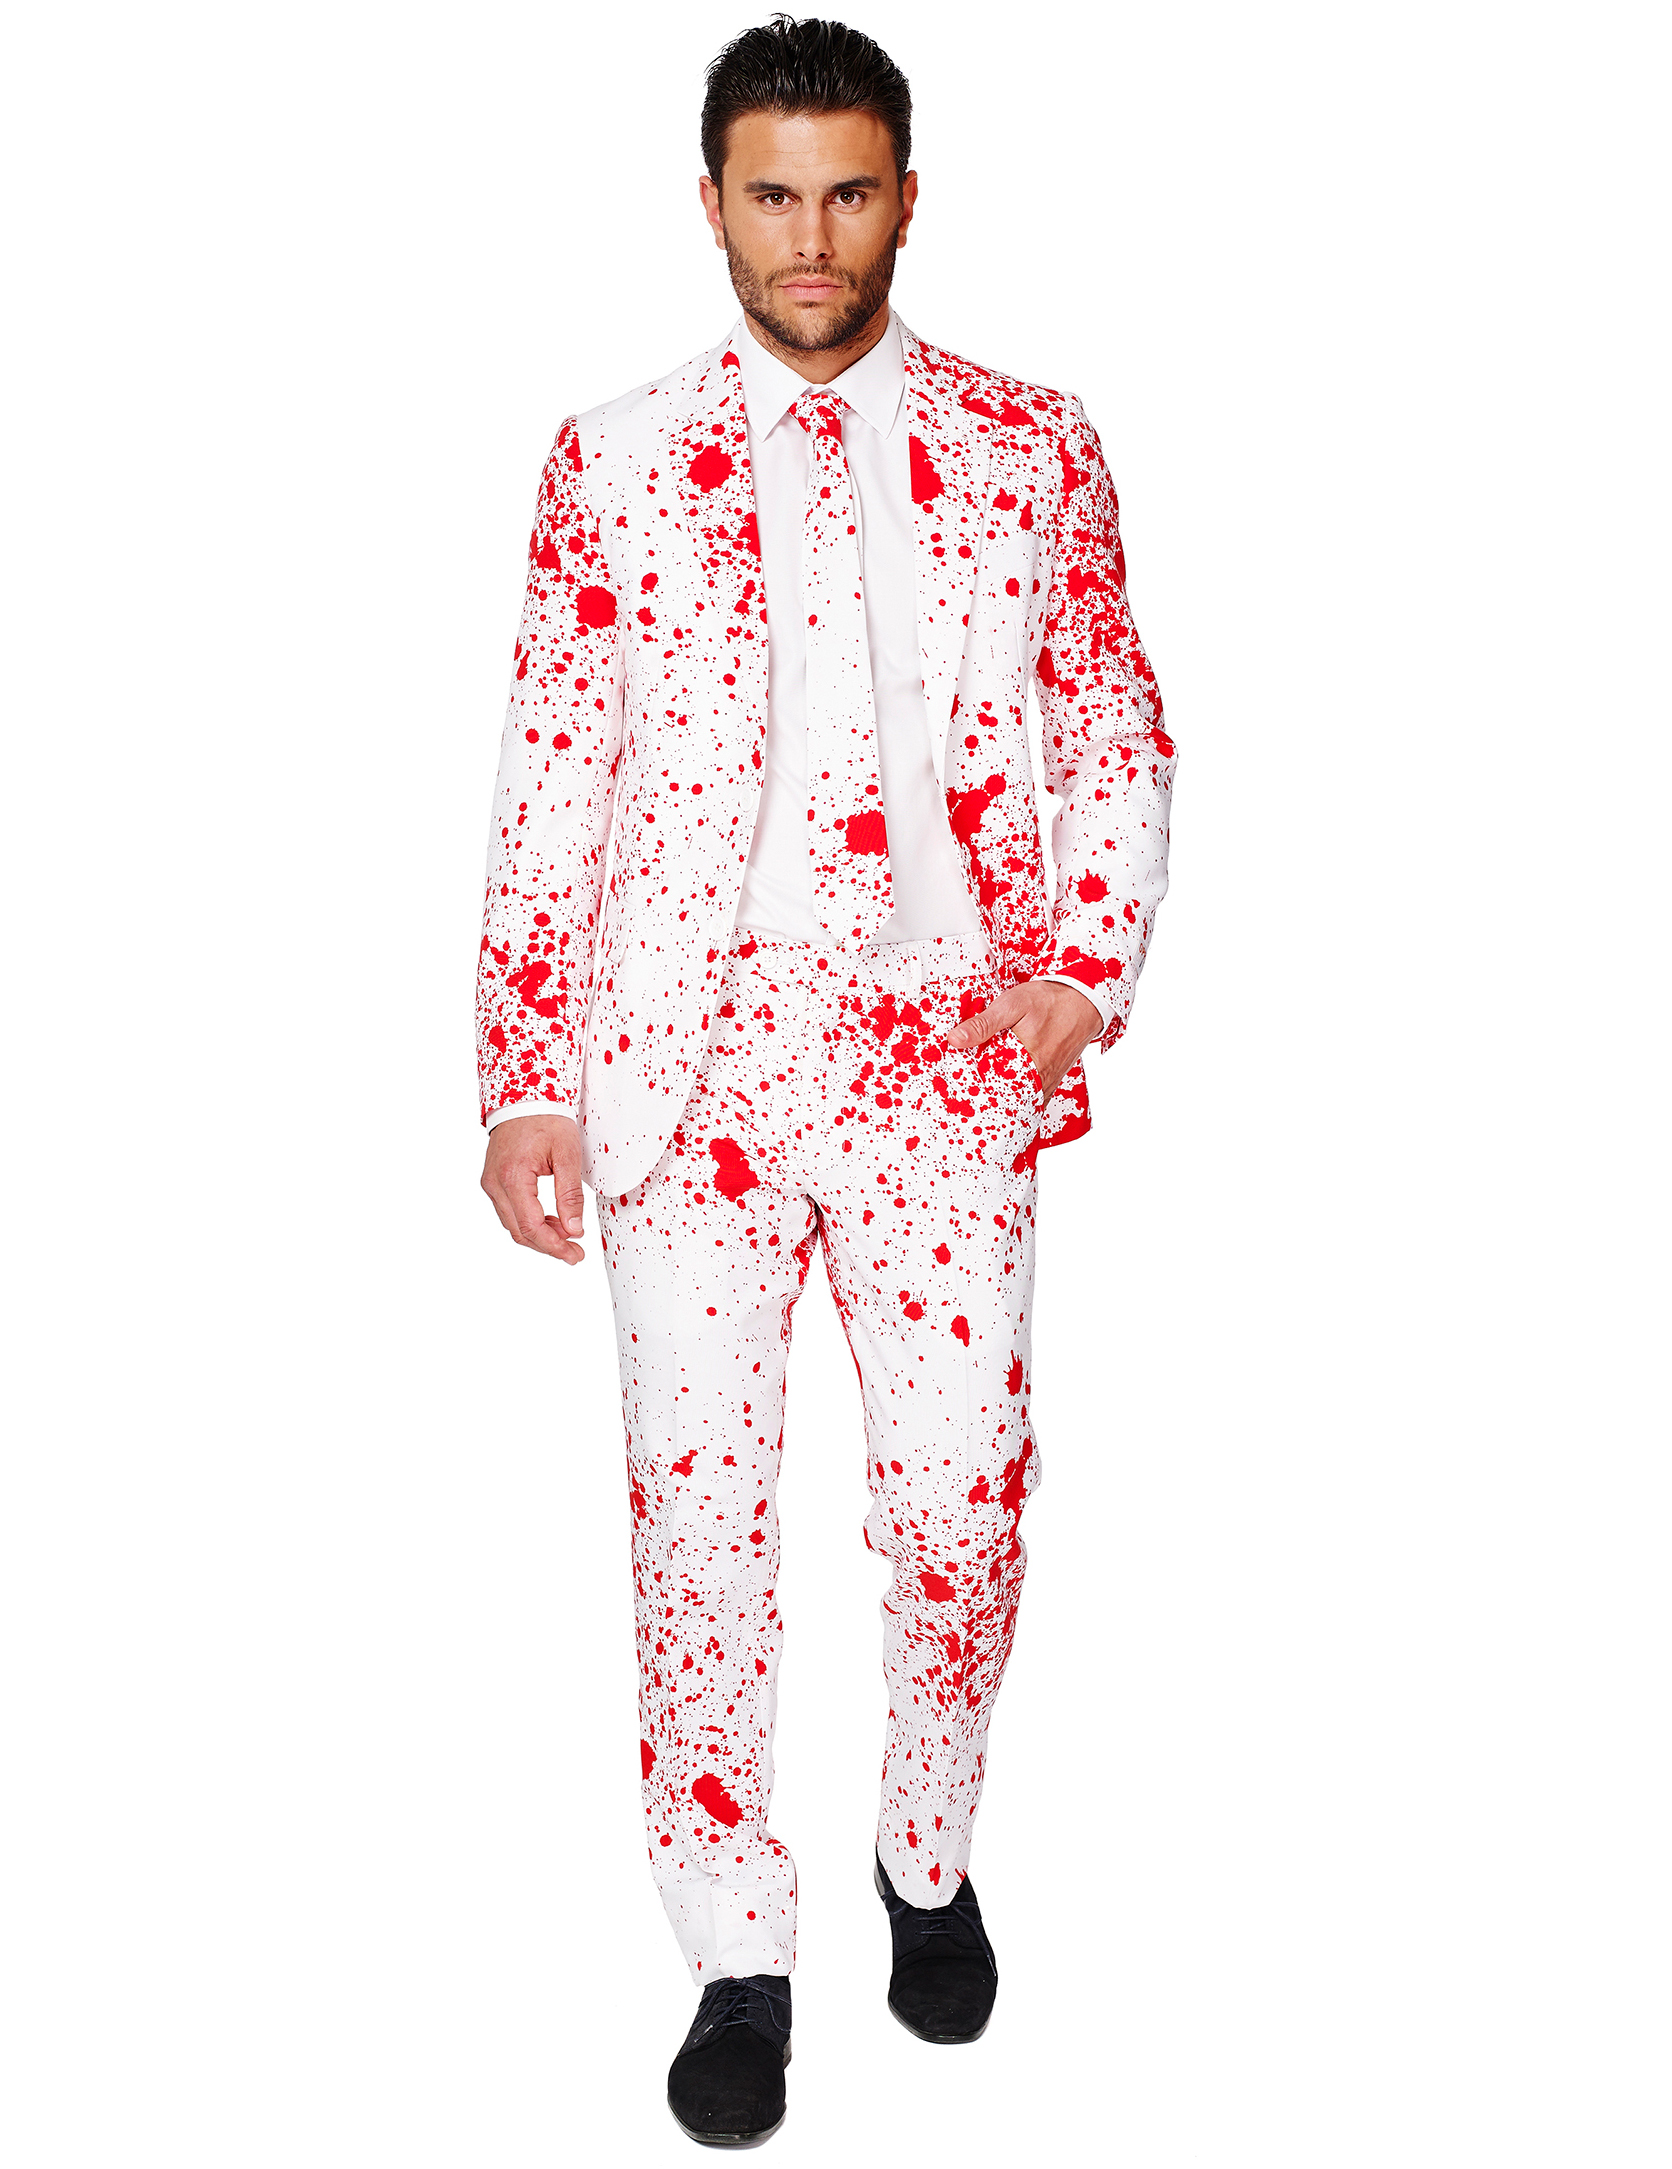 costume halloween bianco insanguinato uomo opposuits. Black Bedroom Furniture Sets. Home Design Ideas